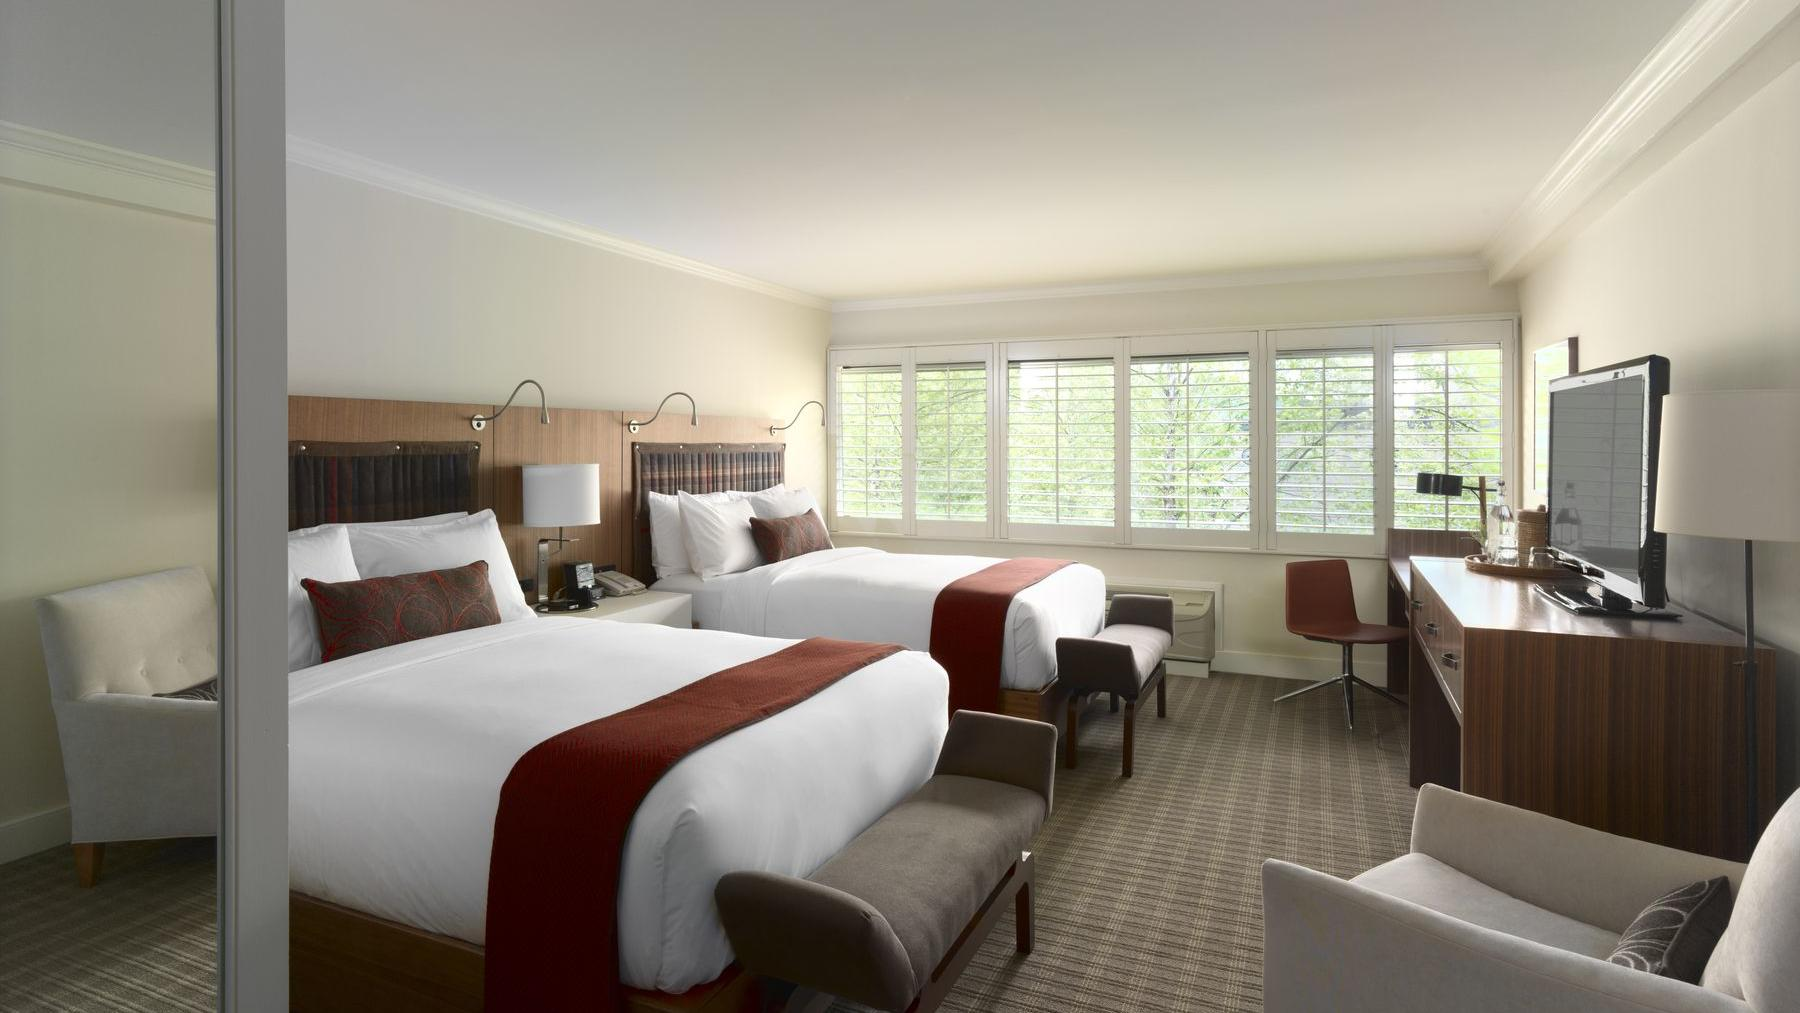 Deluxe hotel room with two double beds